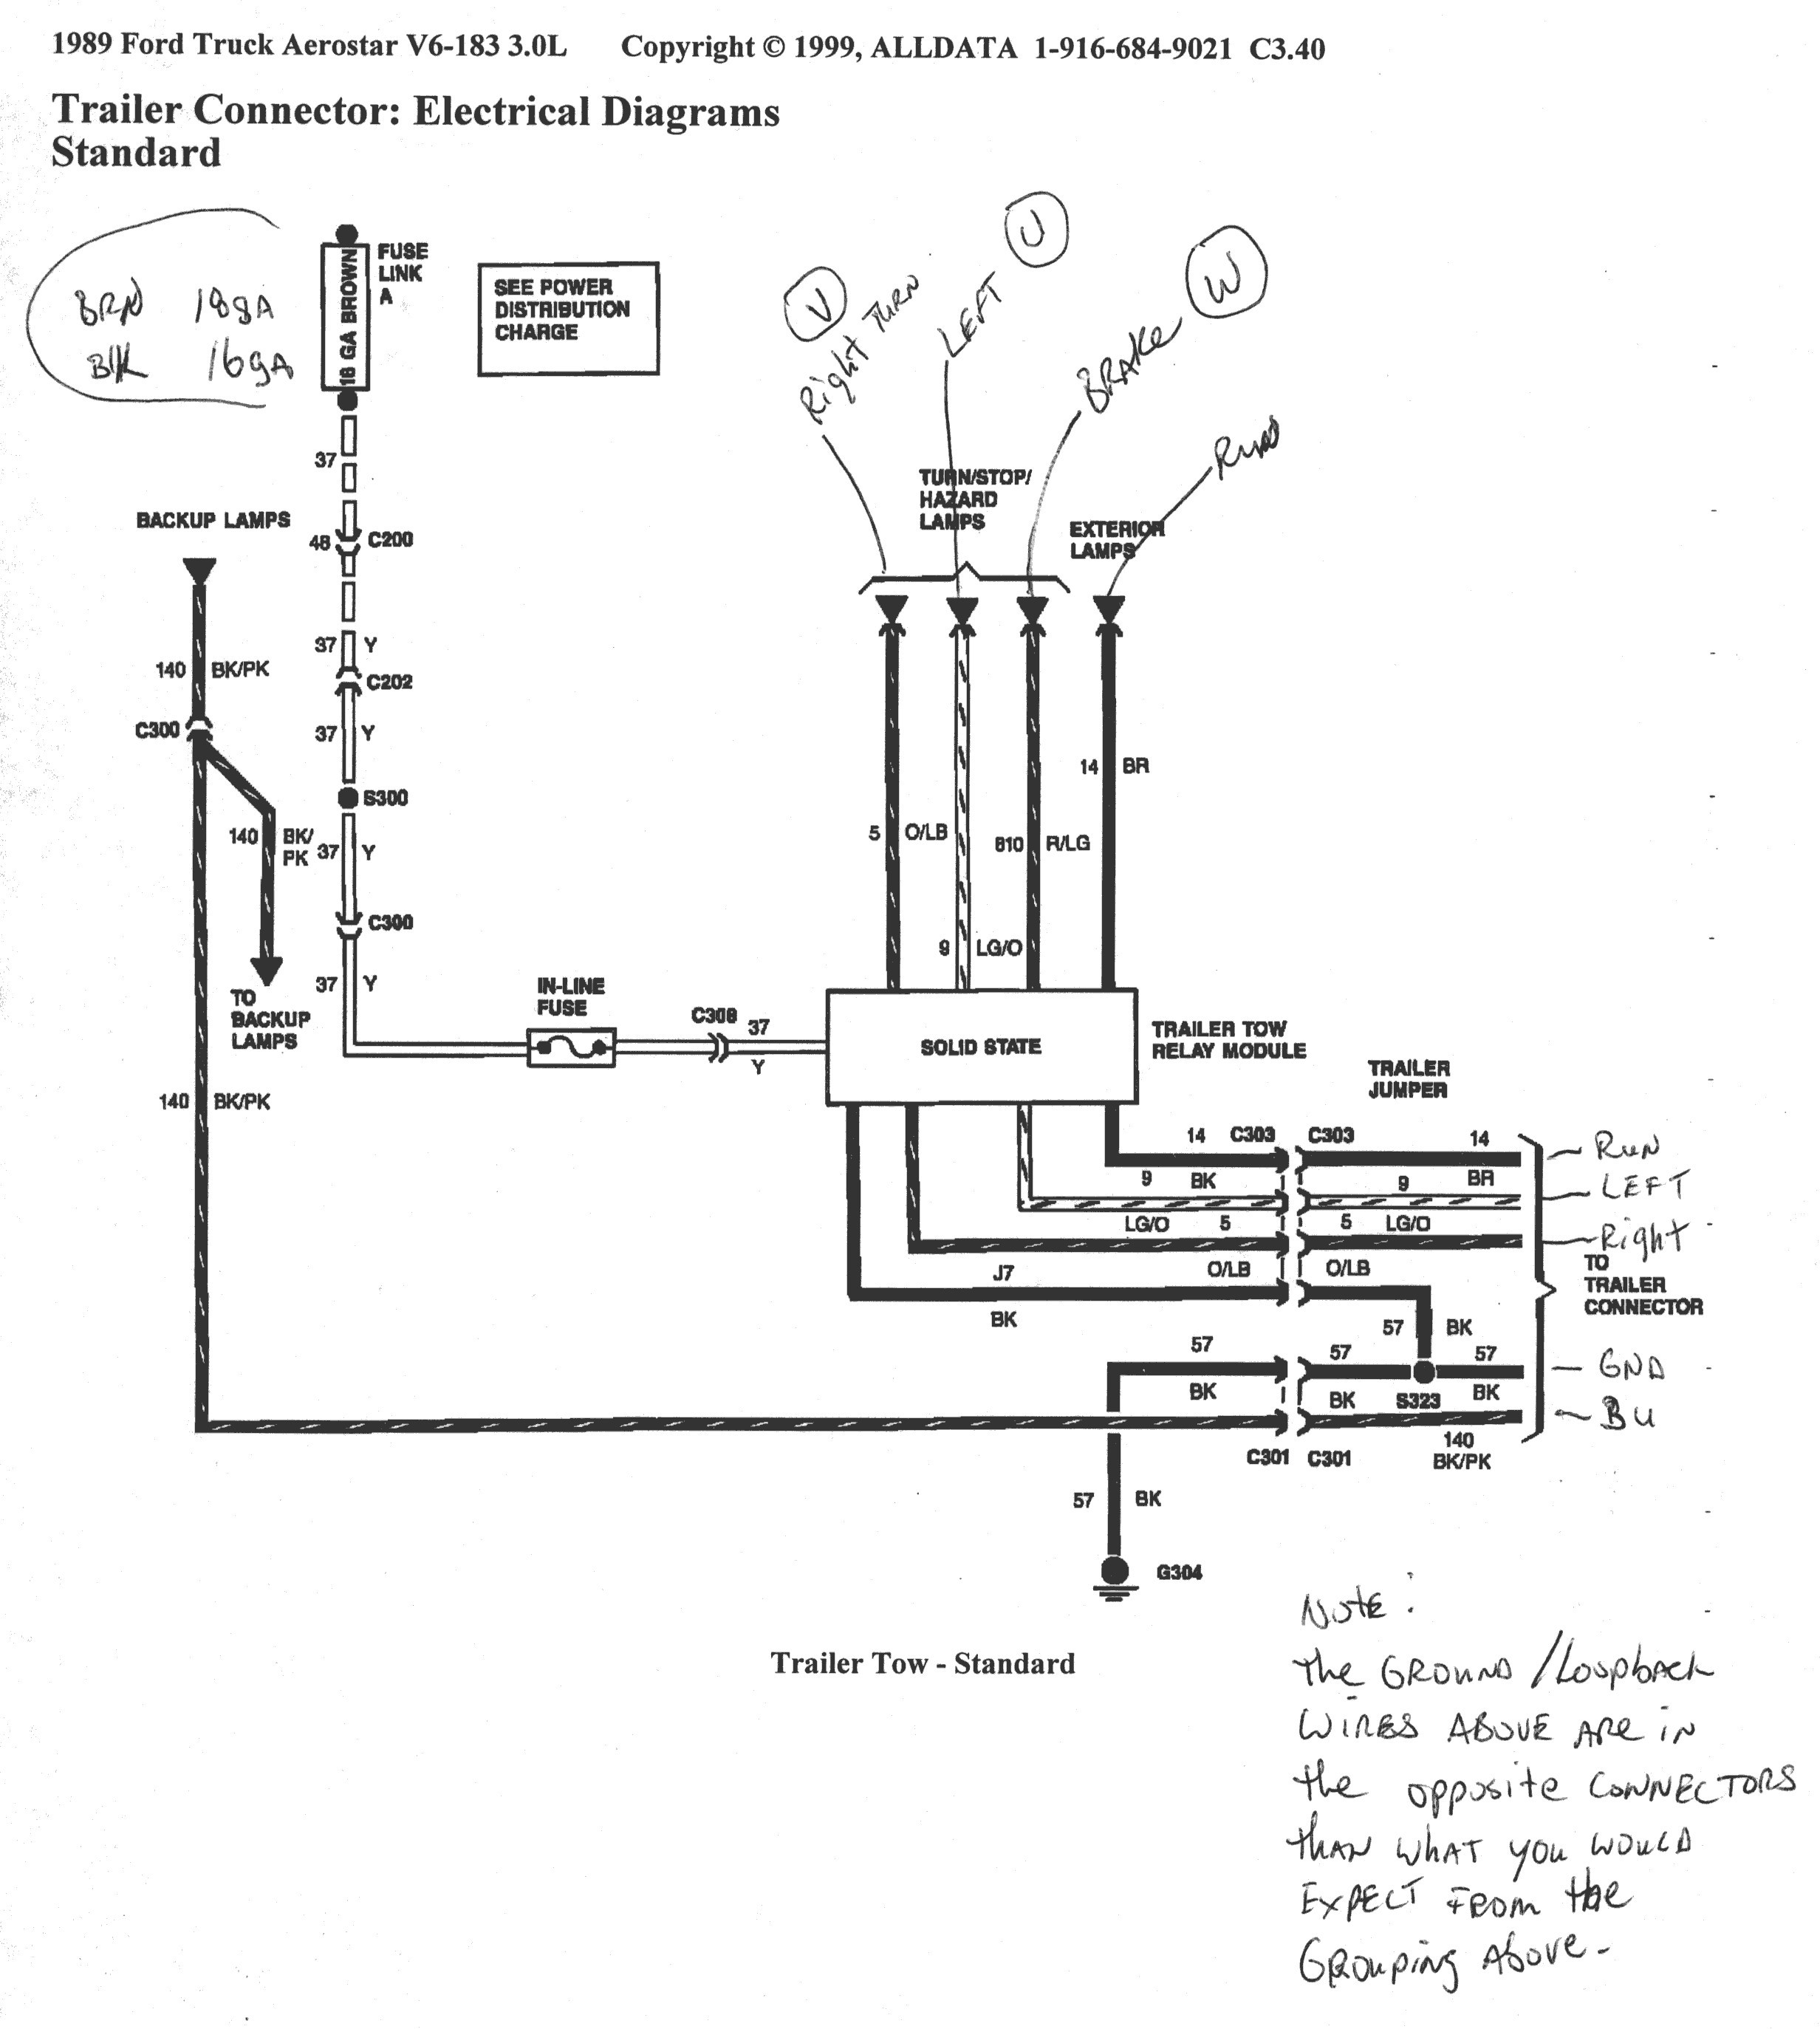 [DIAGRAM_4FR]  0E18D0F 1979 Ford F150 Wiring Harness | Wiring Library | 2000 Ford F 250 Wiring Harness |  | Wiring Library